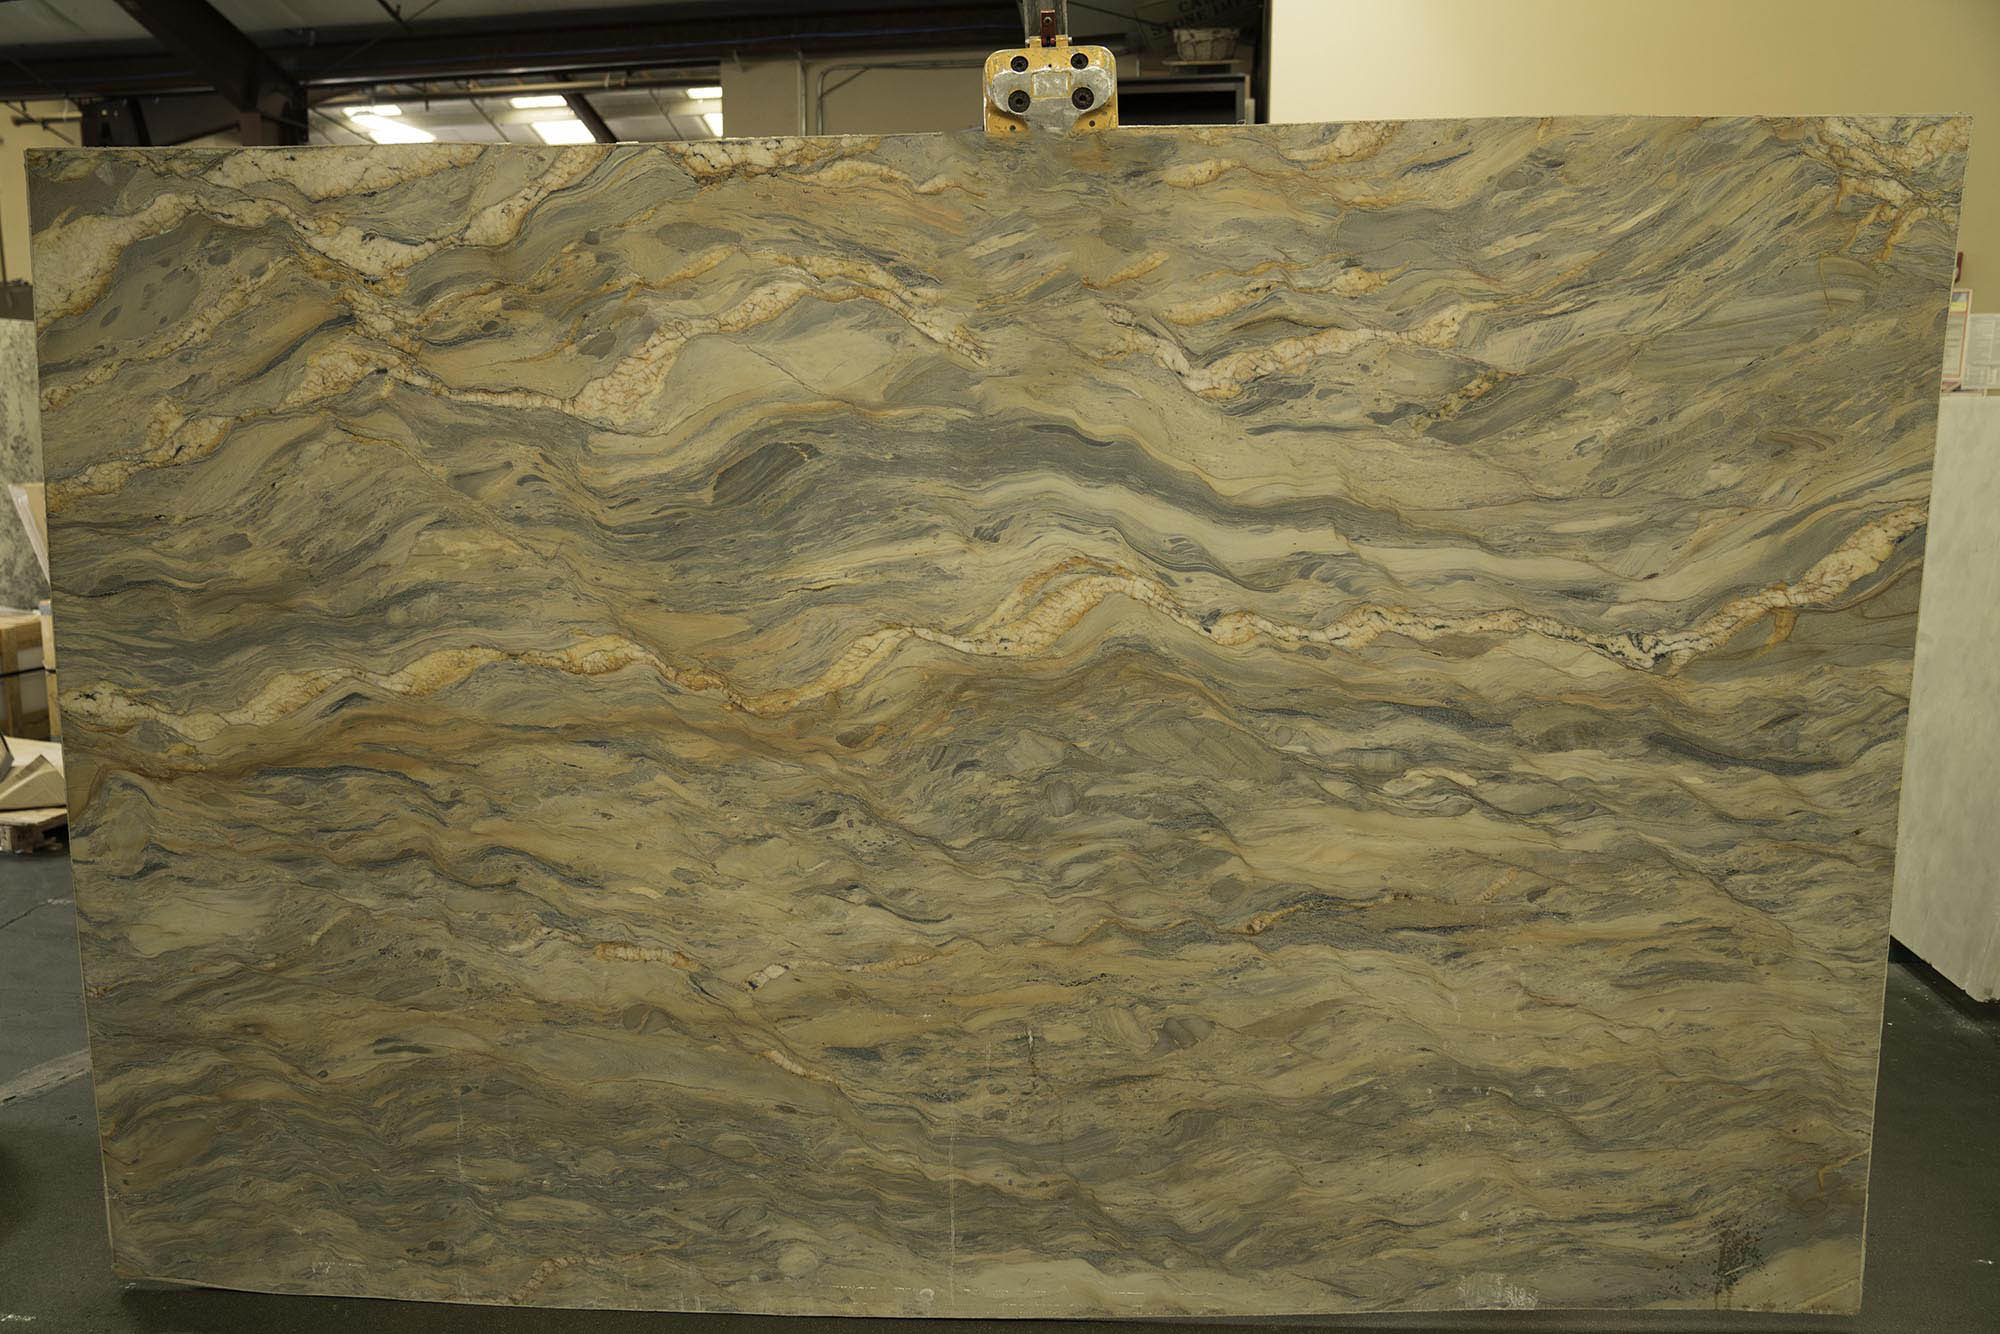 Leathered Granite Countertops Reviews Quartz Countertops San Francisco Quartzite Slabs Ca